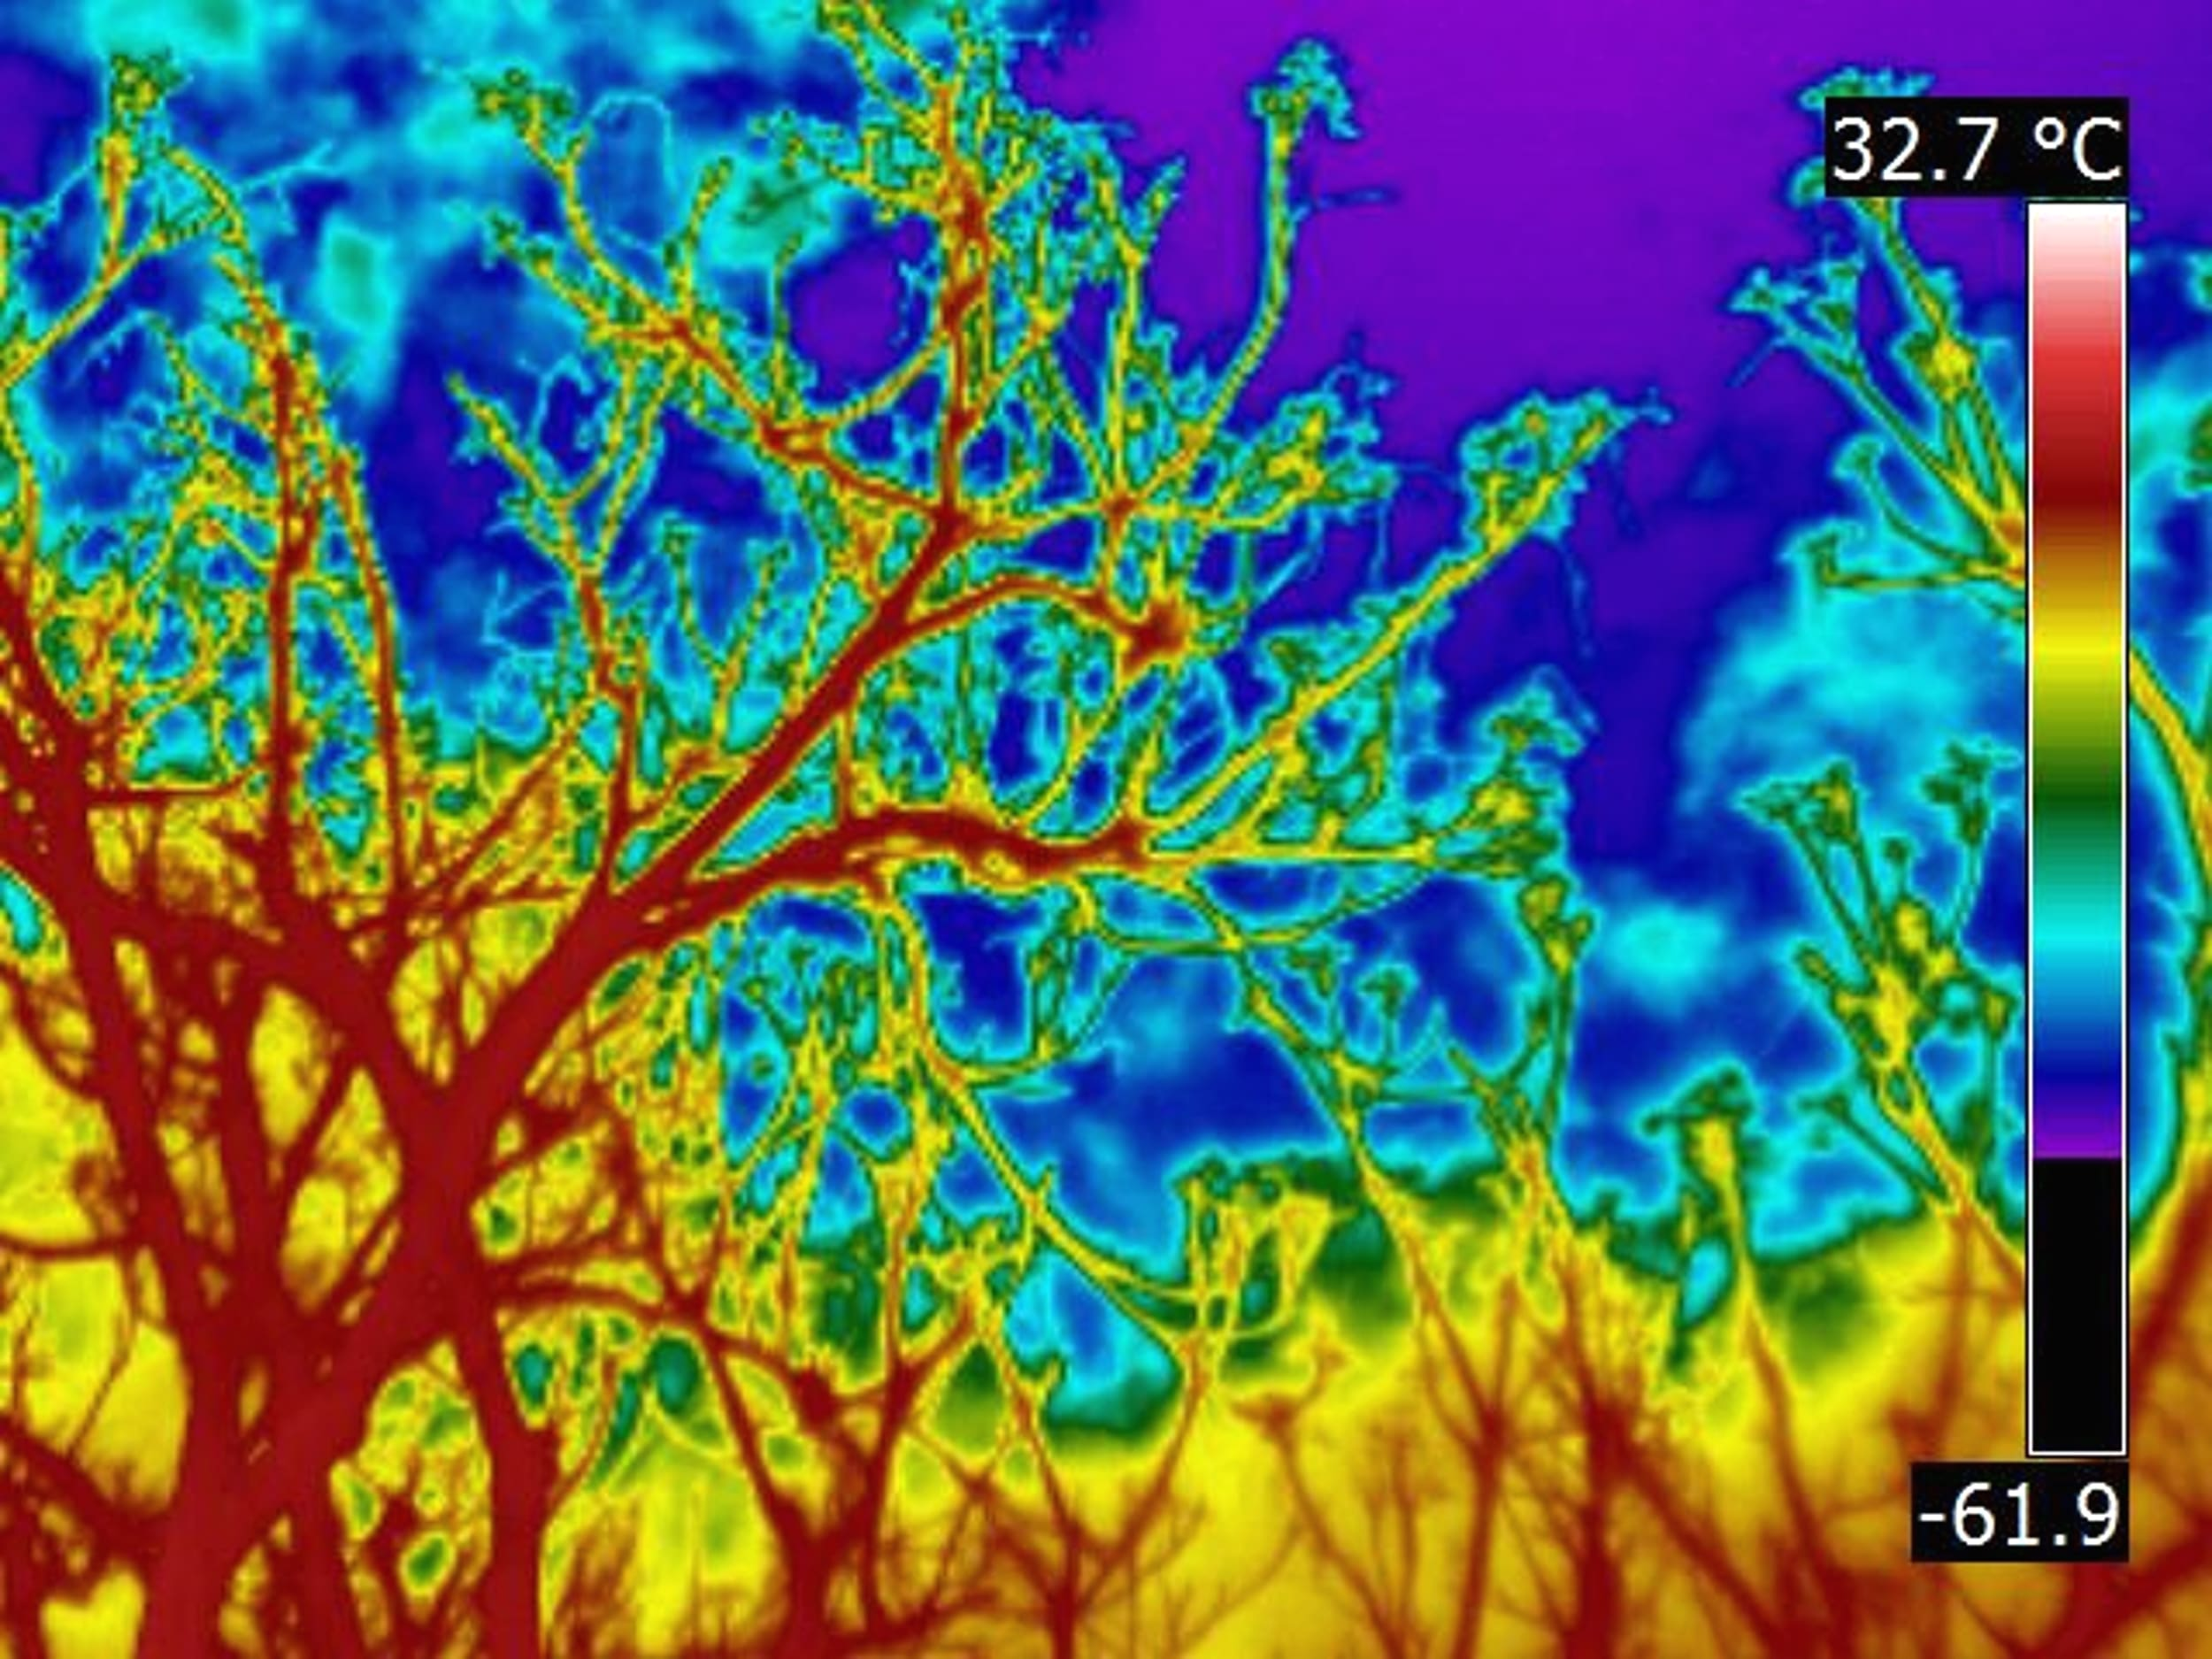 Thermal Imaging Systems in wild nature watching